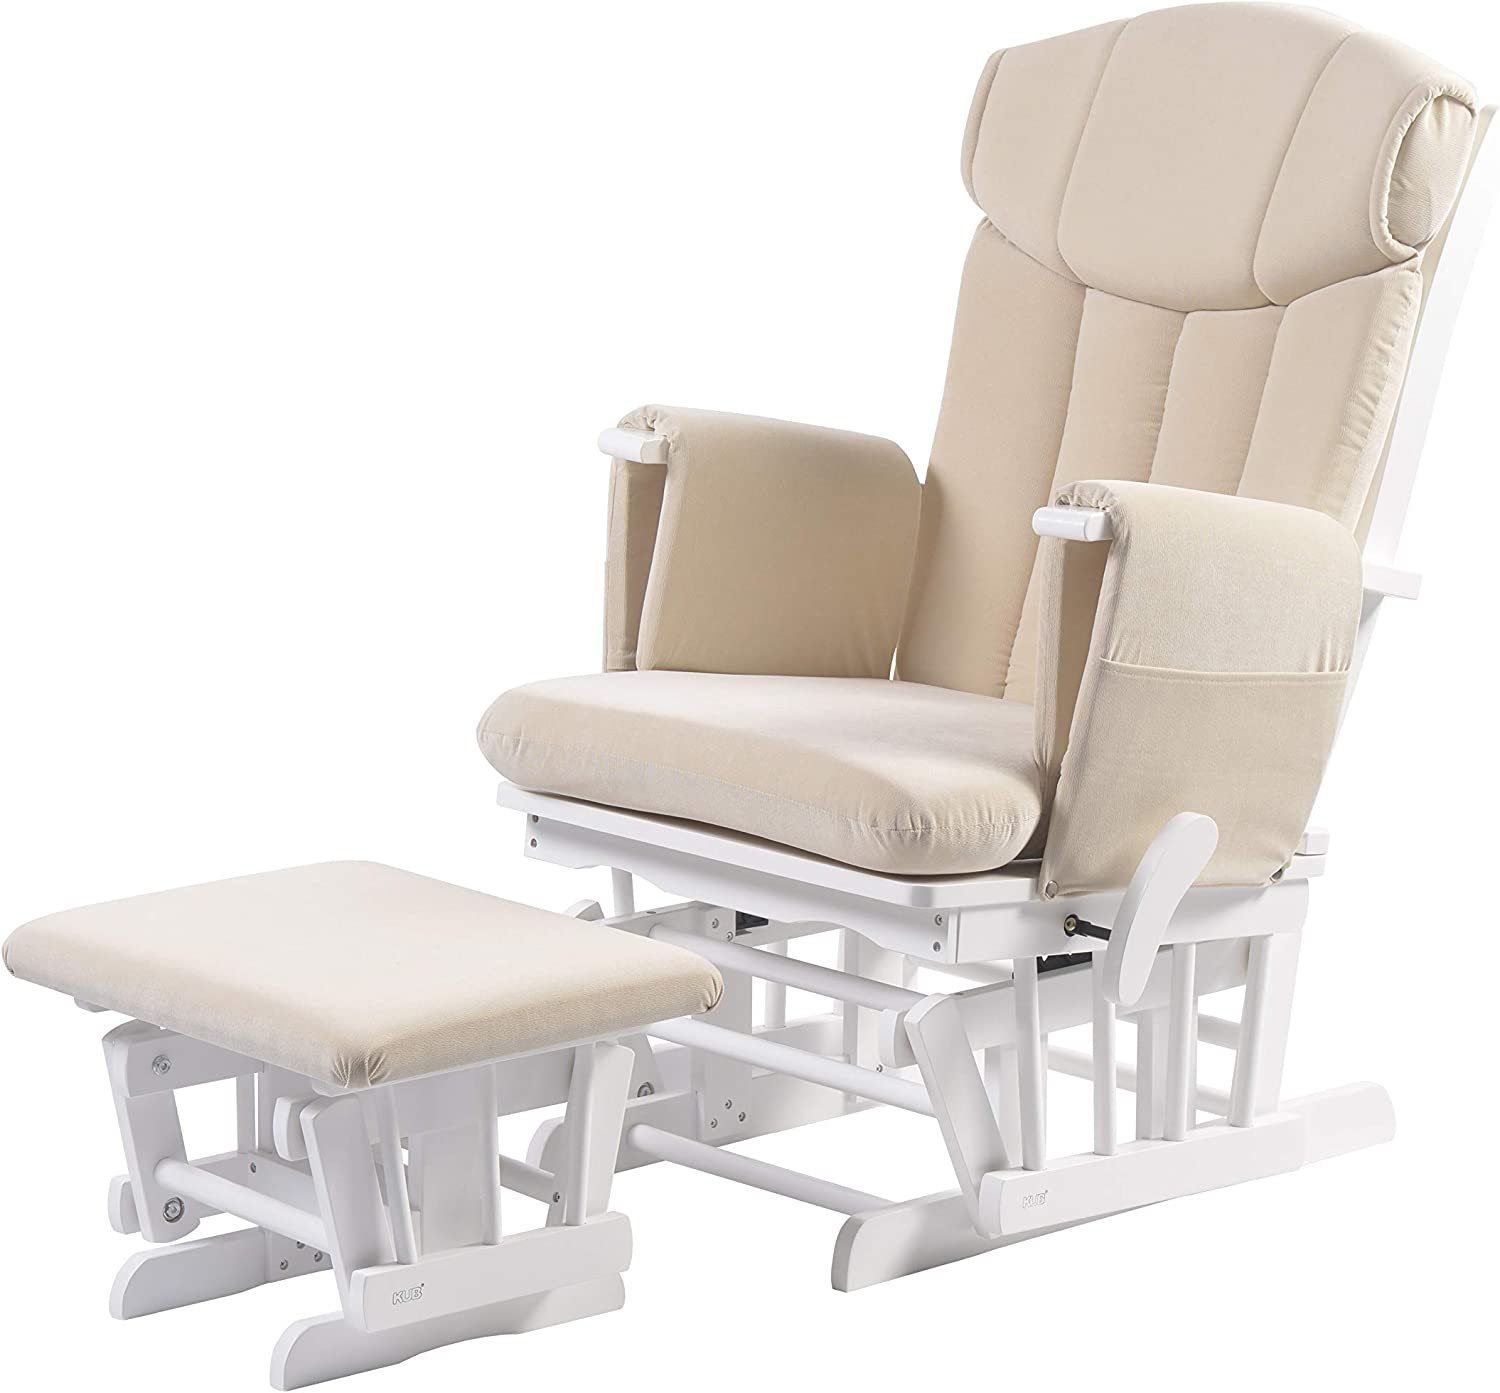 Oatmeal Chatsworth Nursing Glider and Footstool